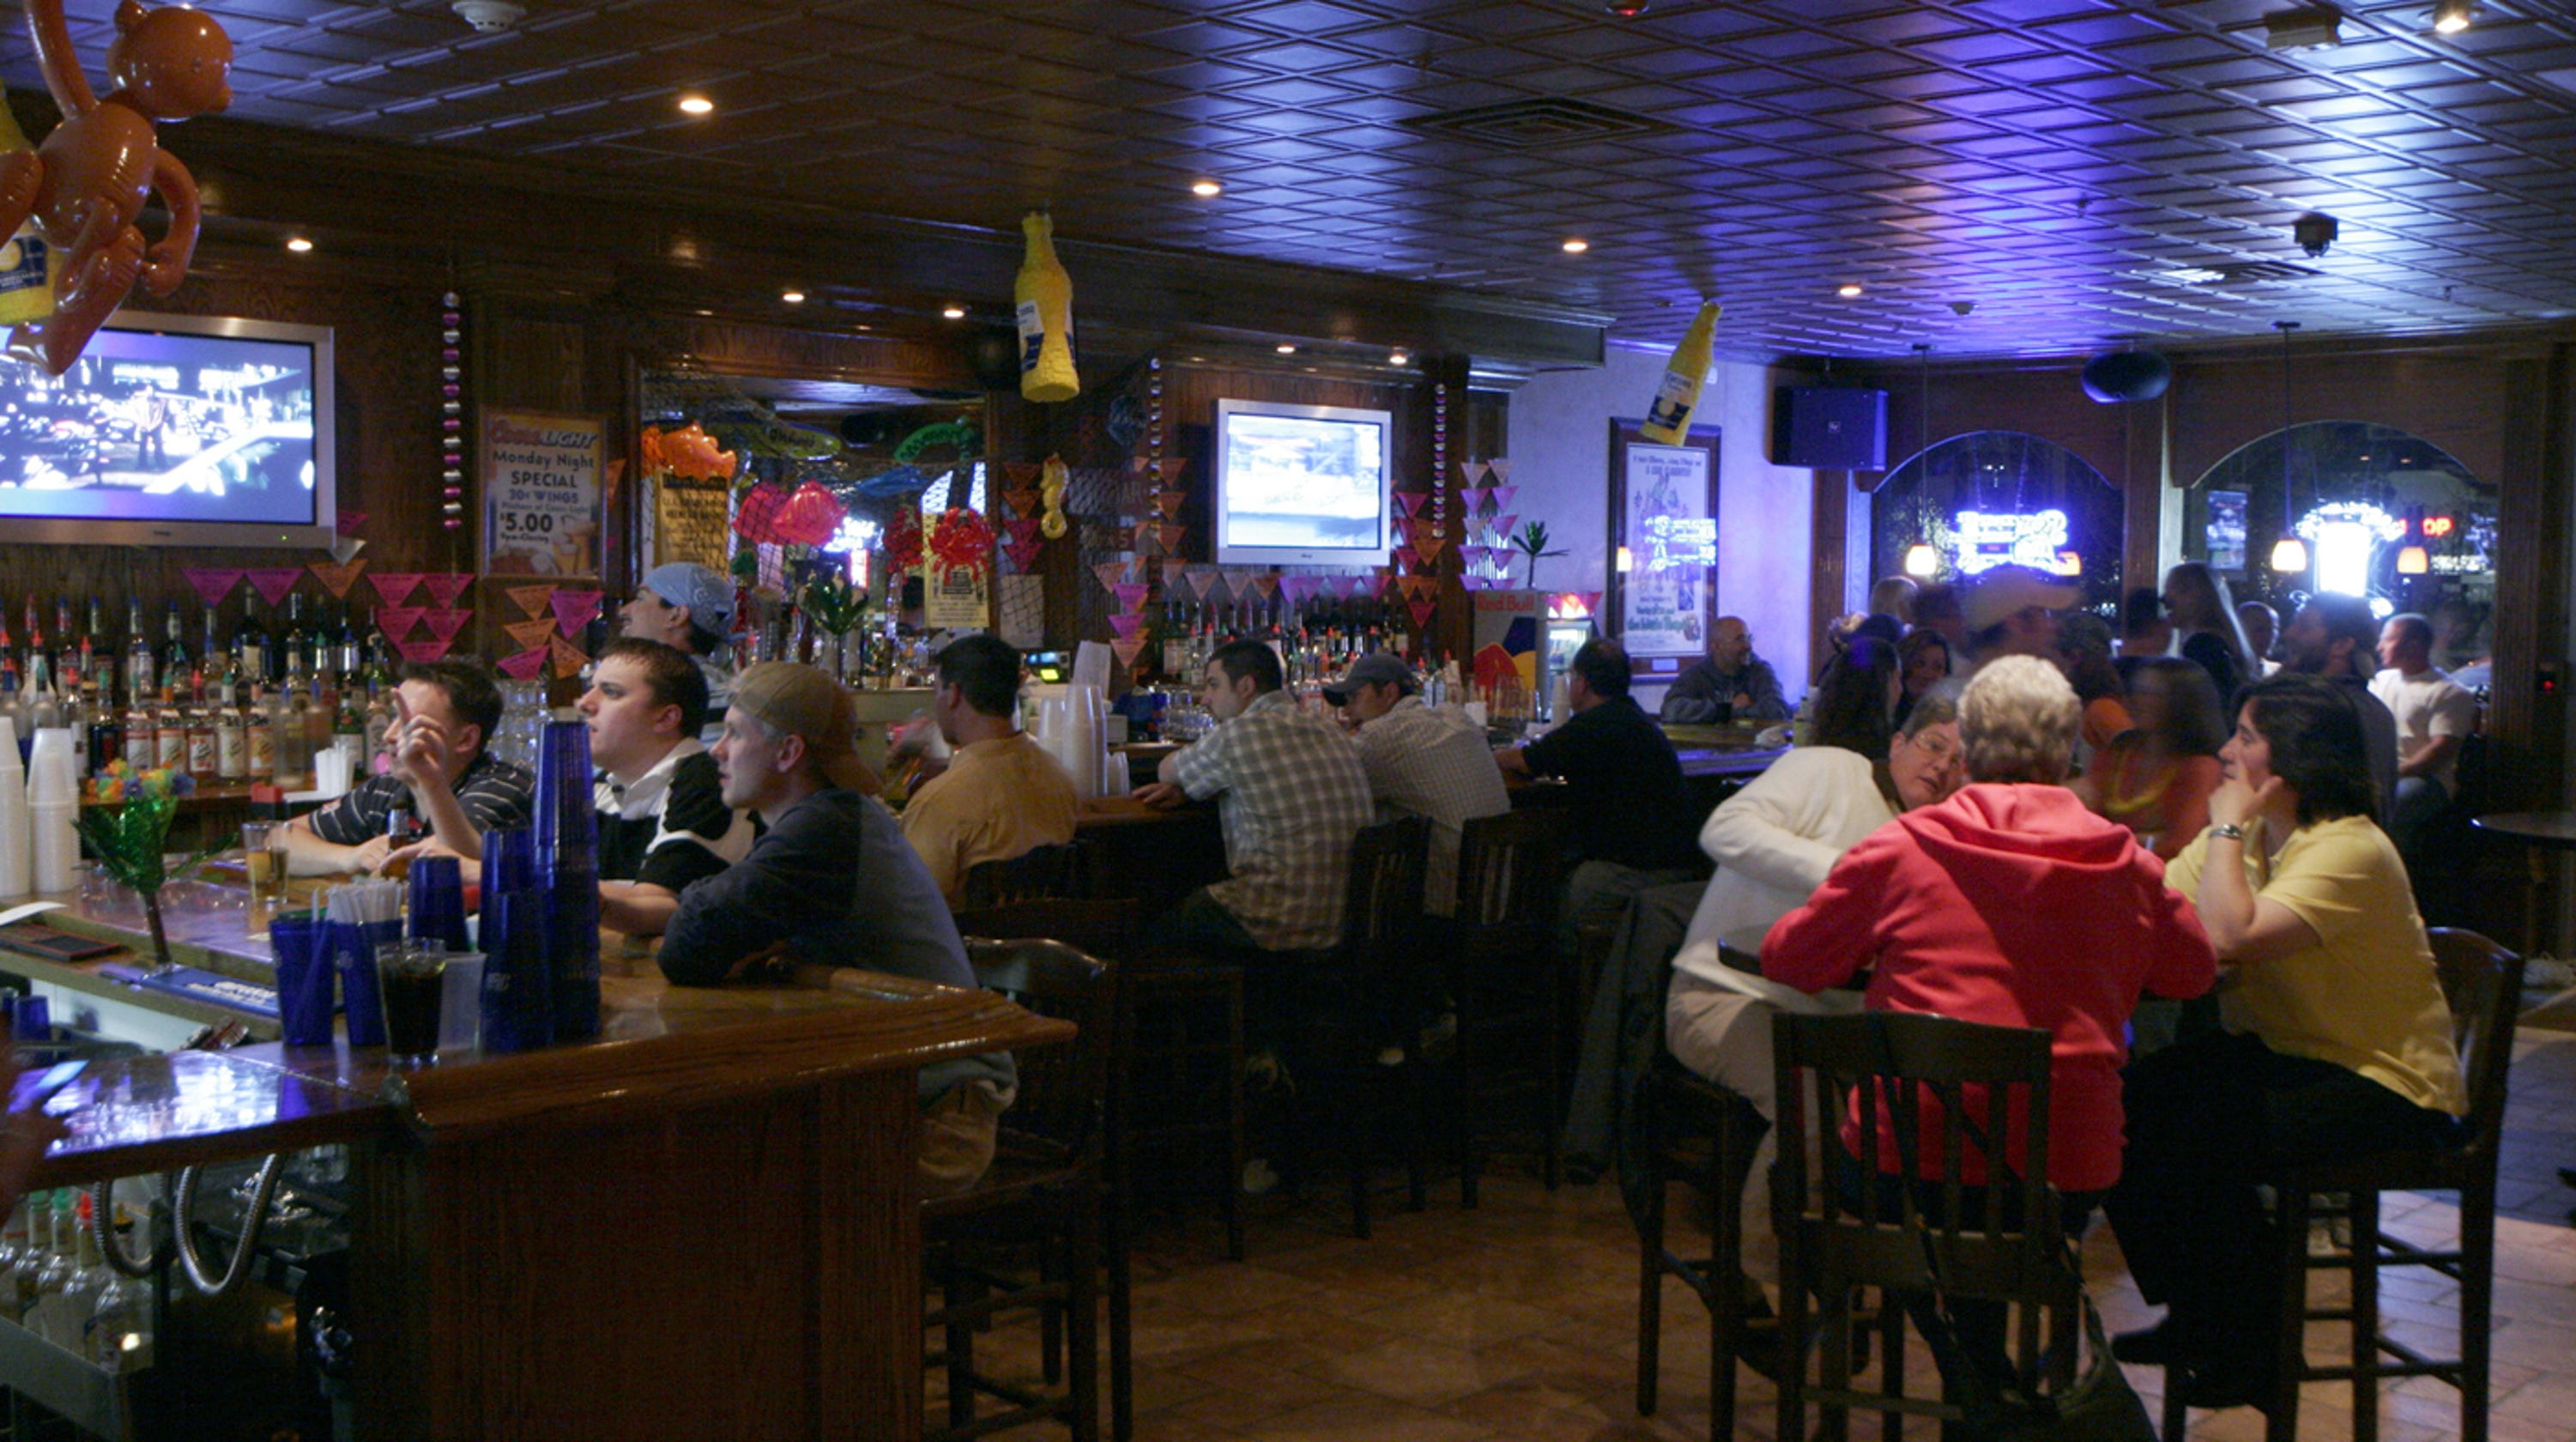 Darby O'Gills liquor license suspended for selling alcohol to minors